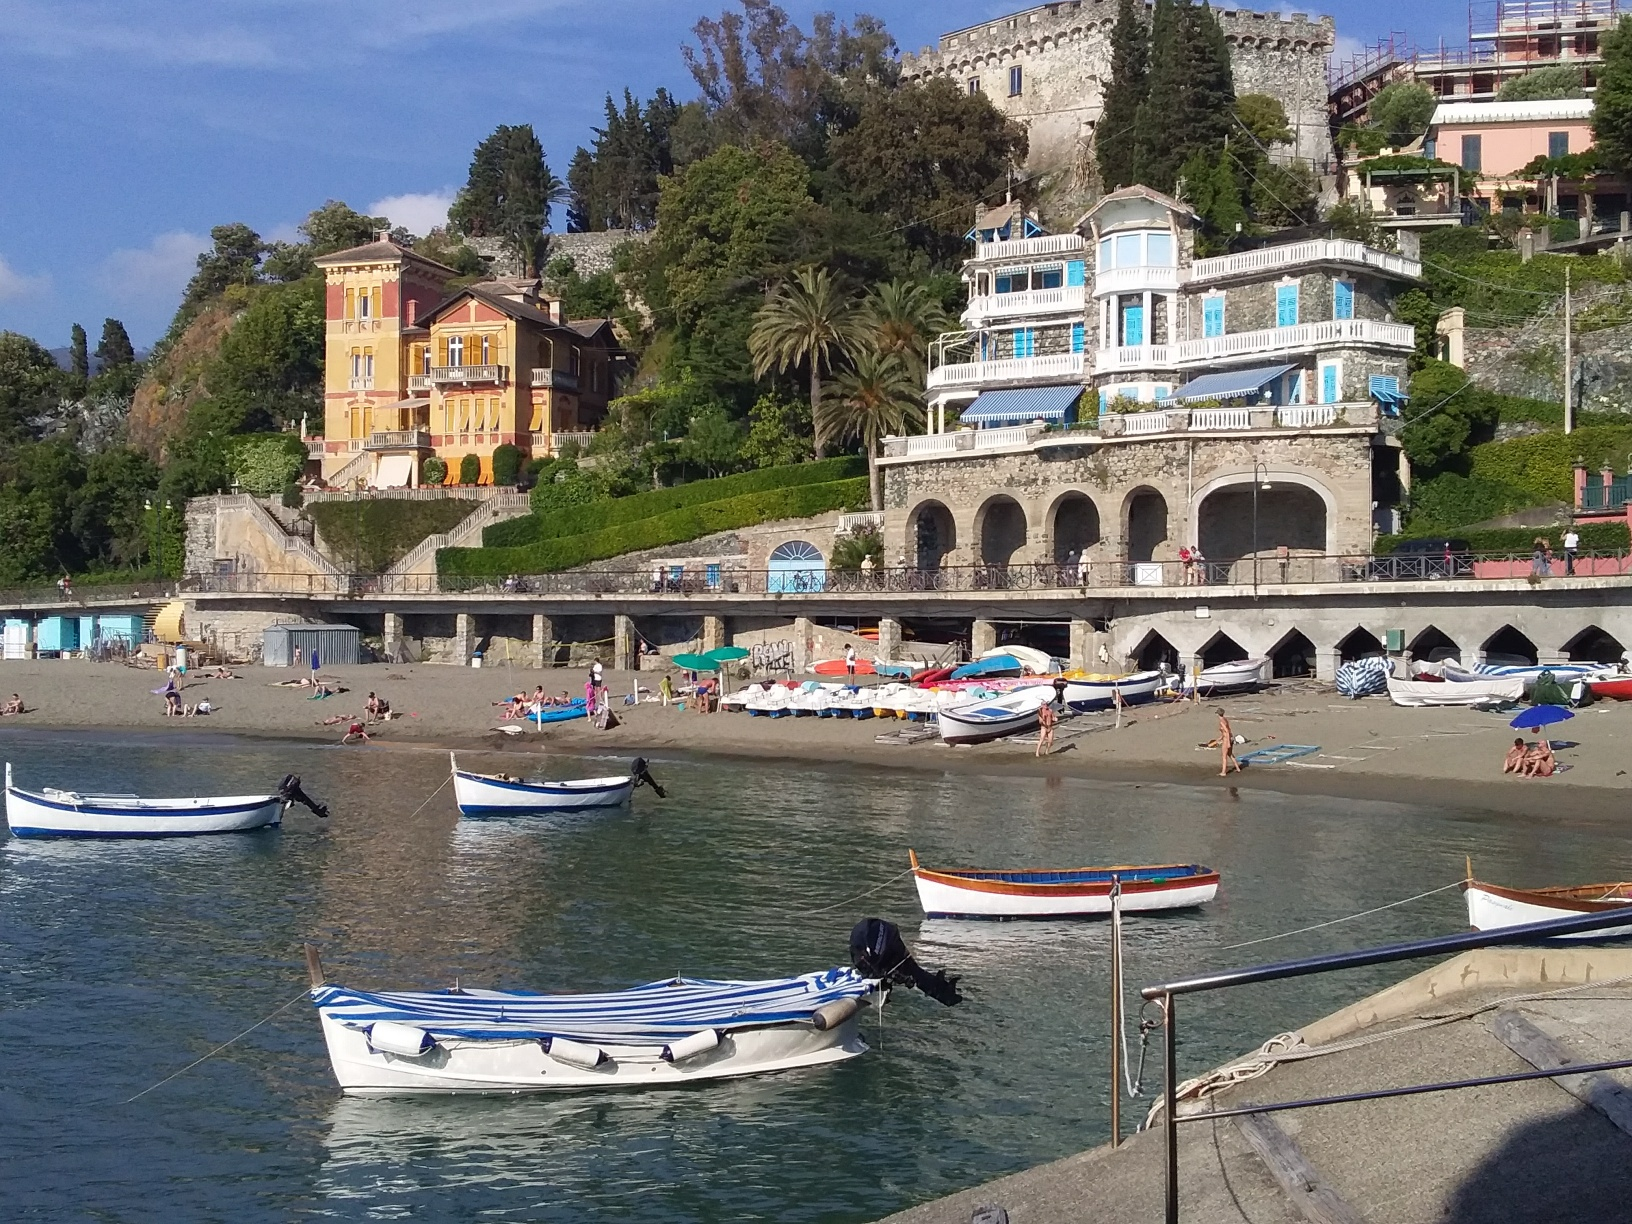 Levanto has beaches, boats, views, good food, and even a castle.